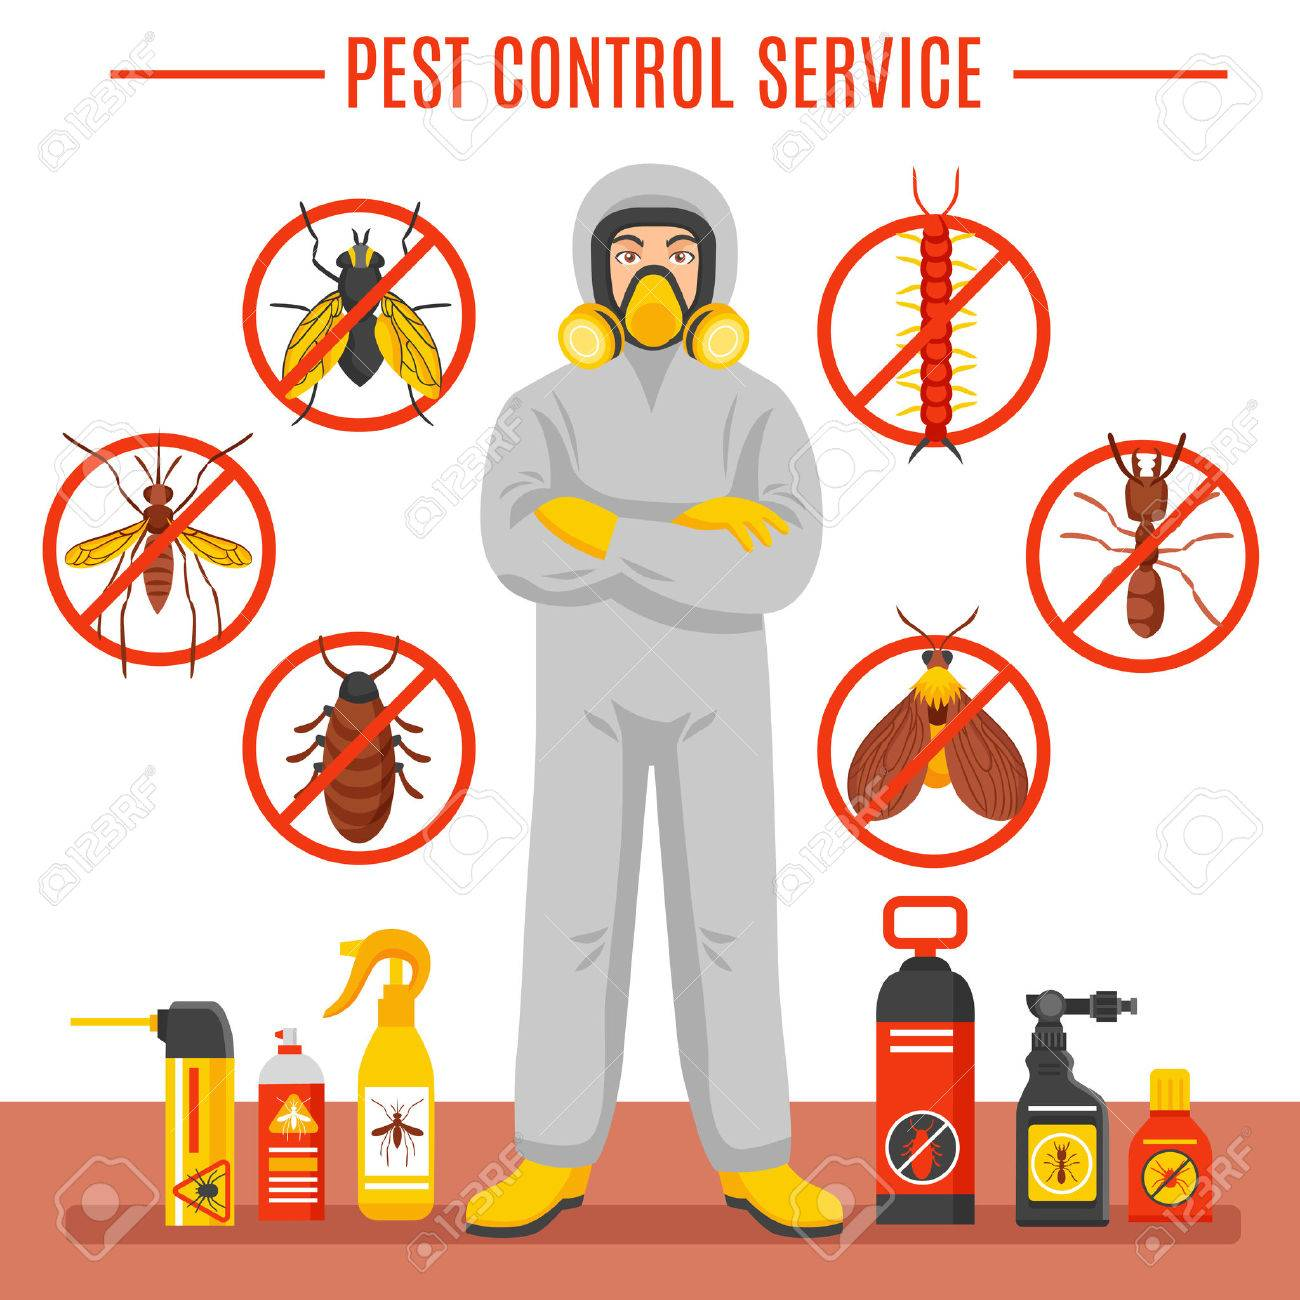 Pest control service vector illustration with exterminator of insects in chemical protective suit termites and disinfection cans flat icons - 61084473